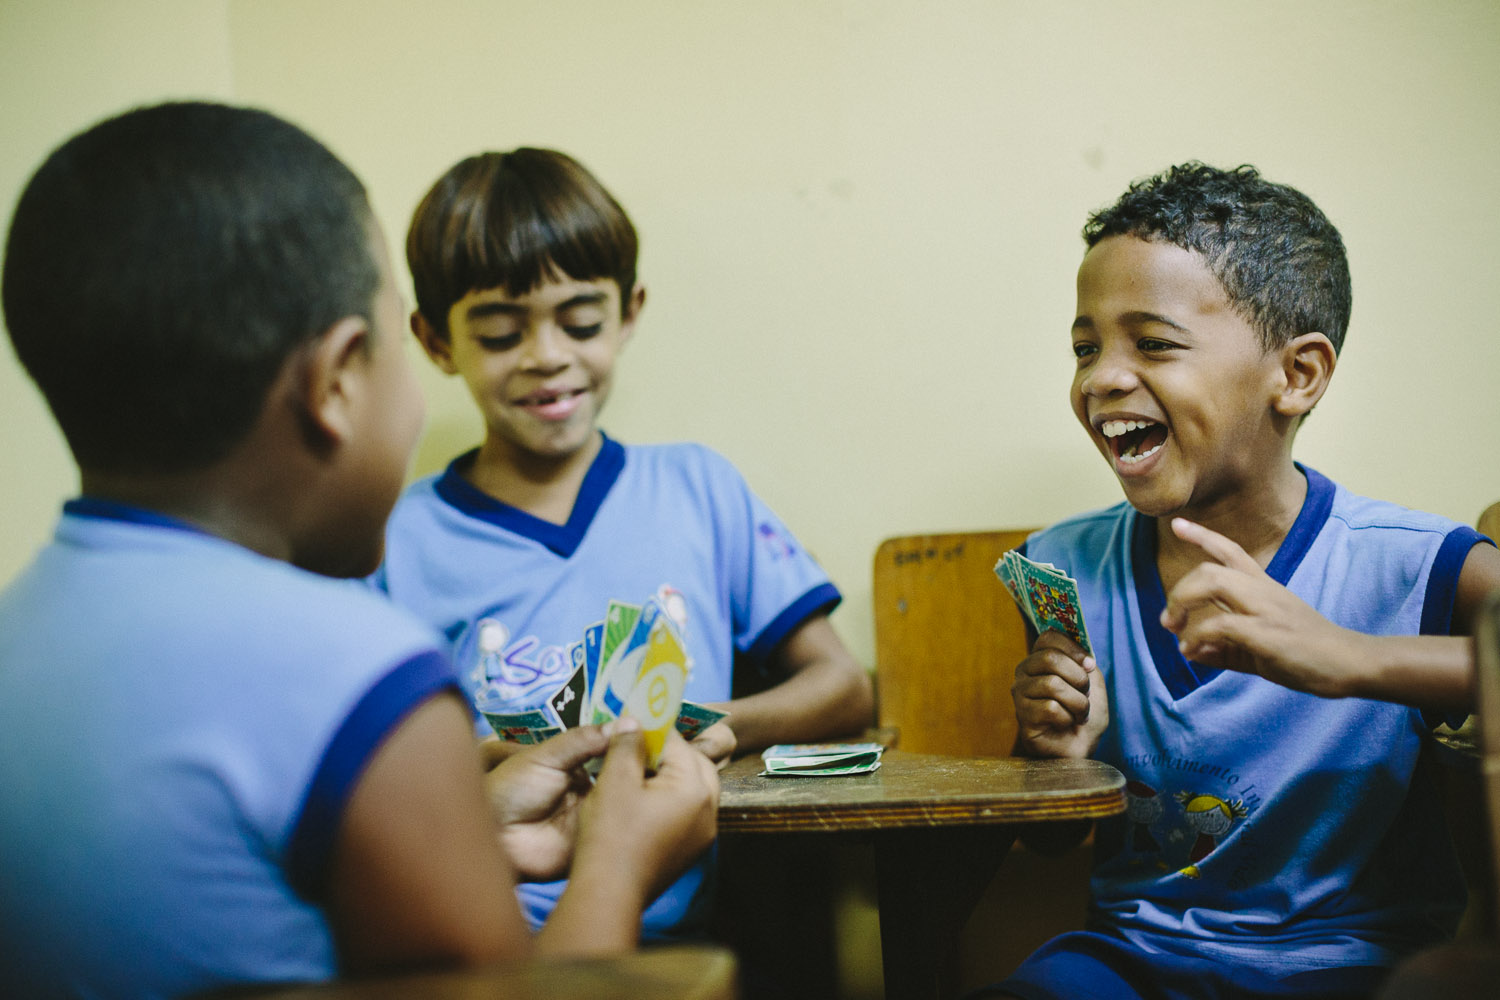 During free classroom time, Emidio enjoys playing Uno with his friends. Emidio during classes at the Compassion Center.